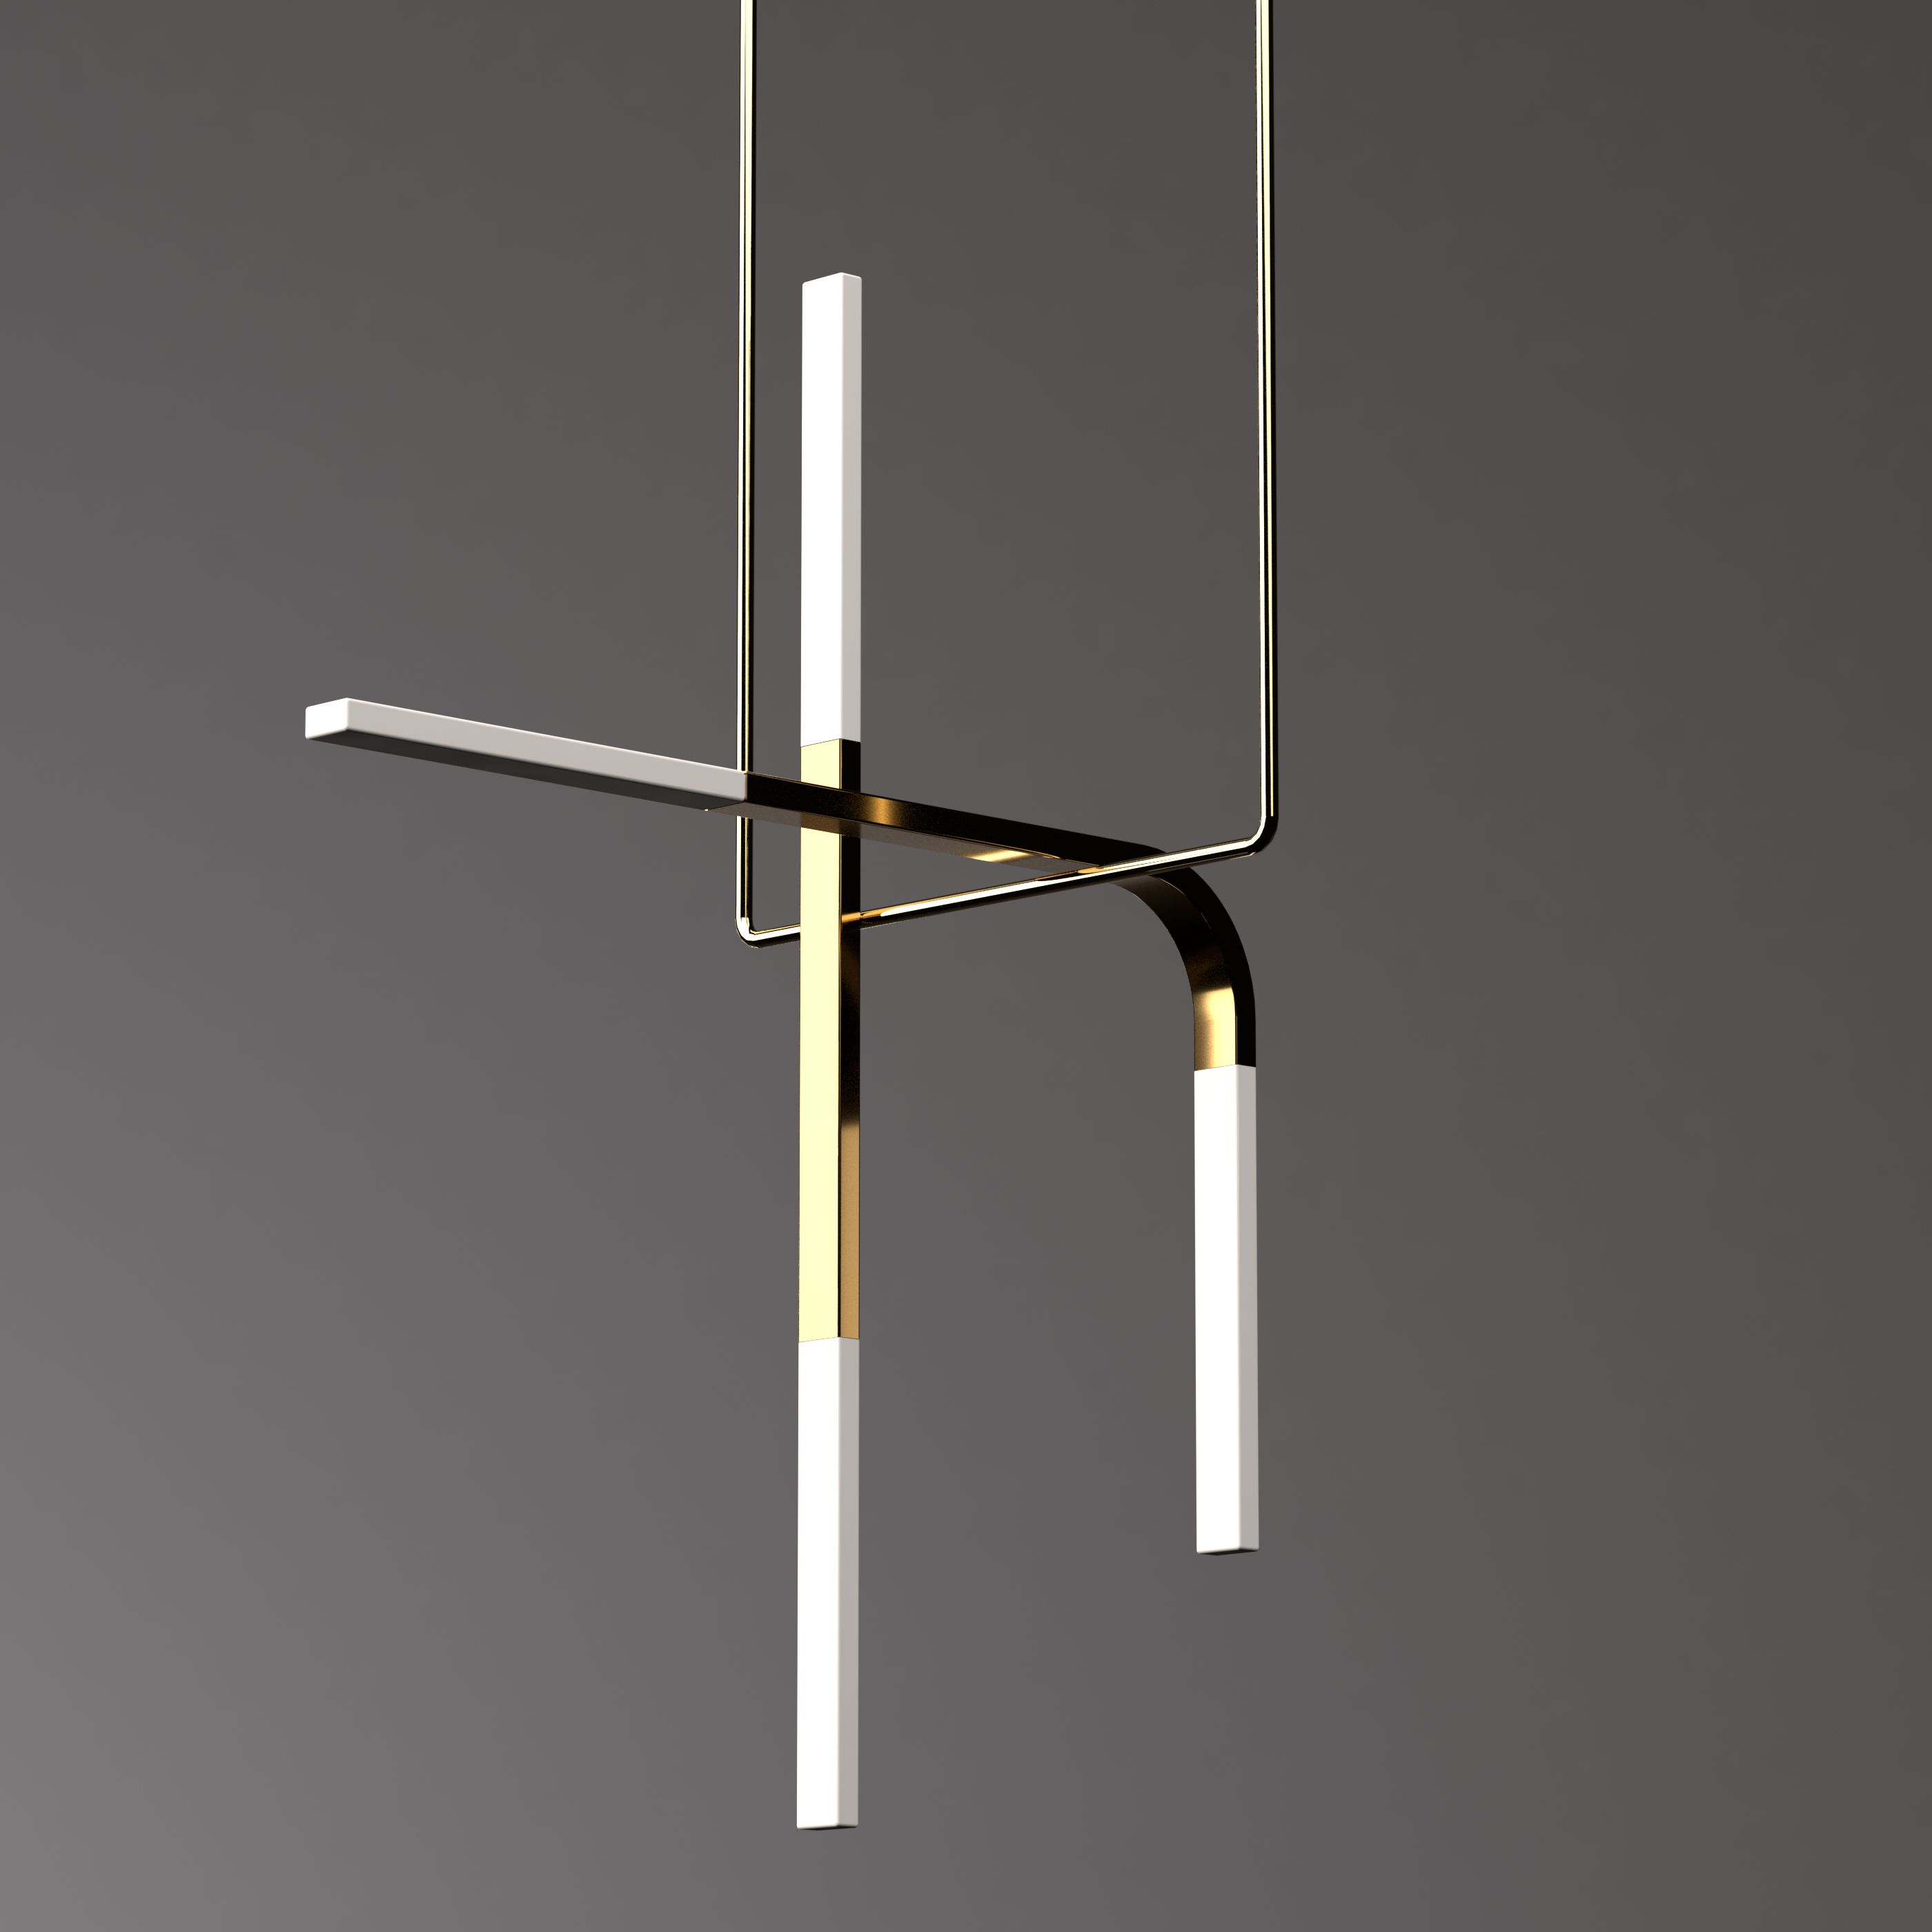 The Acrobat pendant luminaire series is a modular feature light